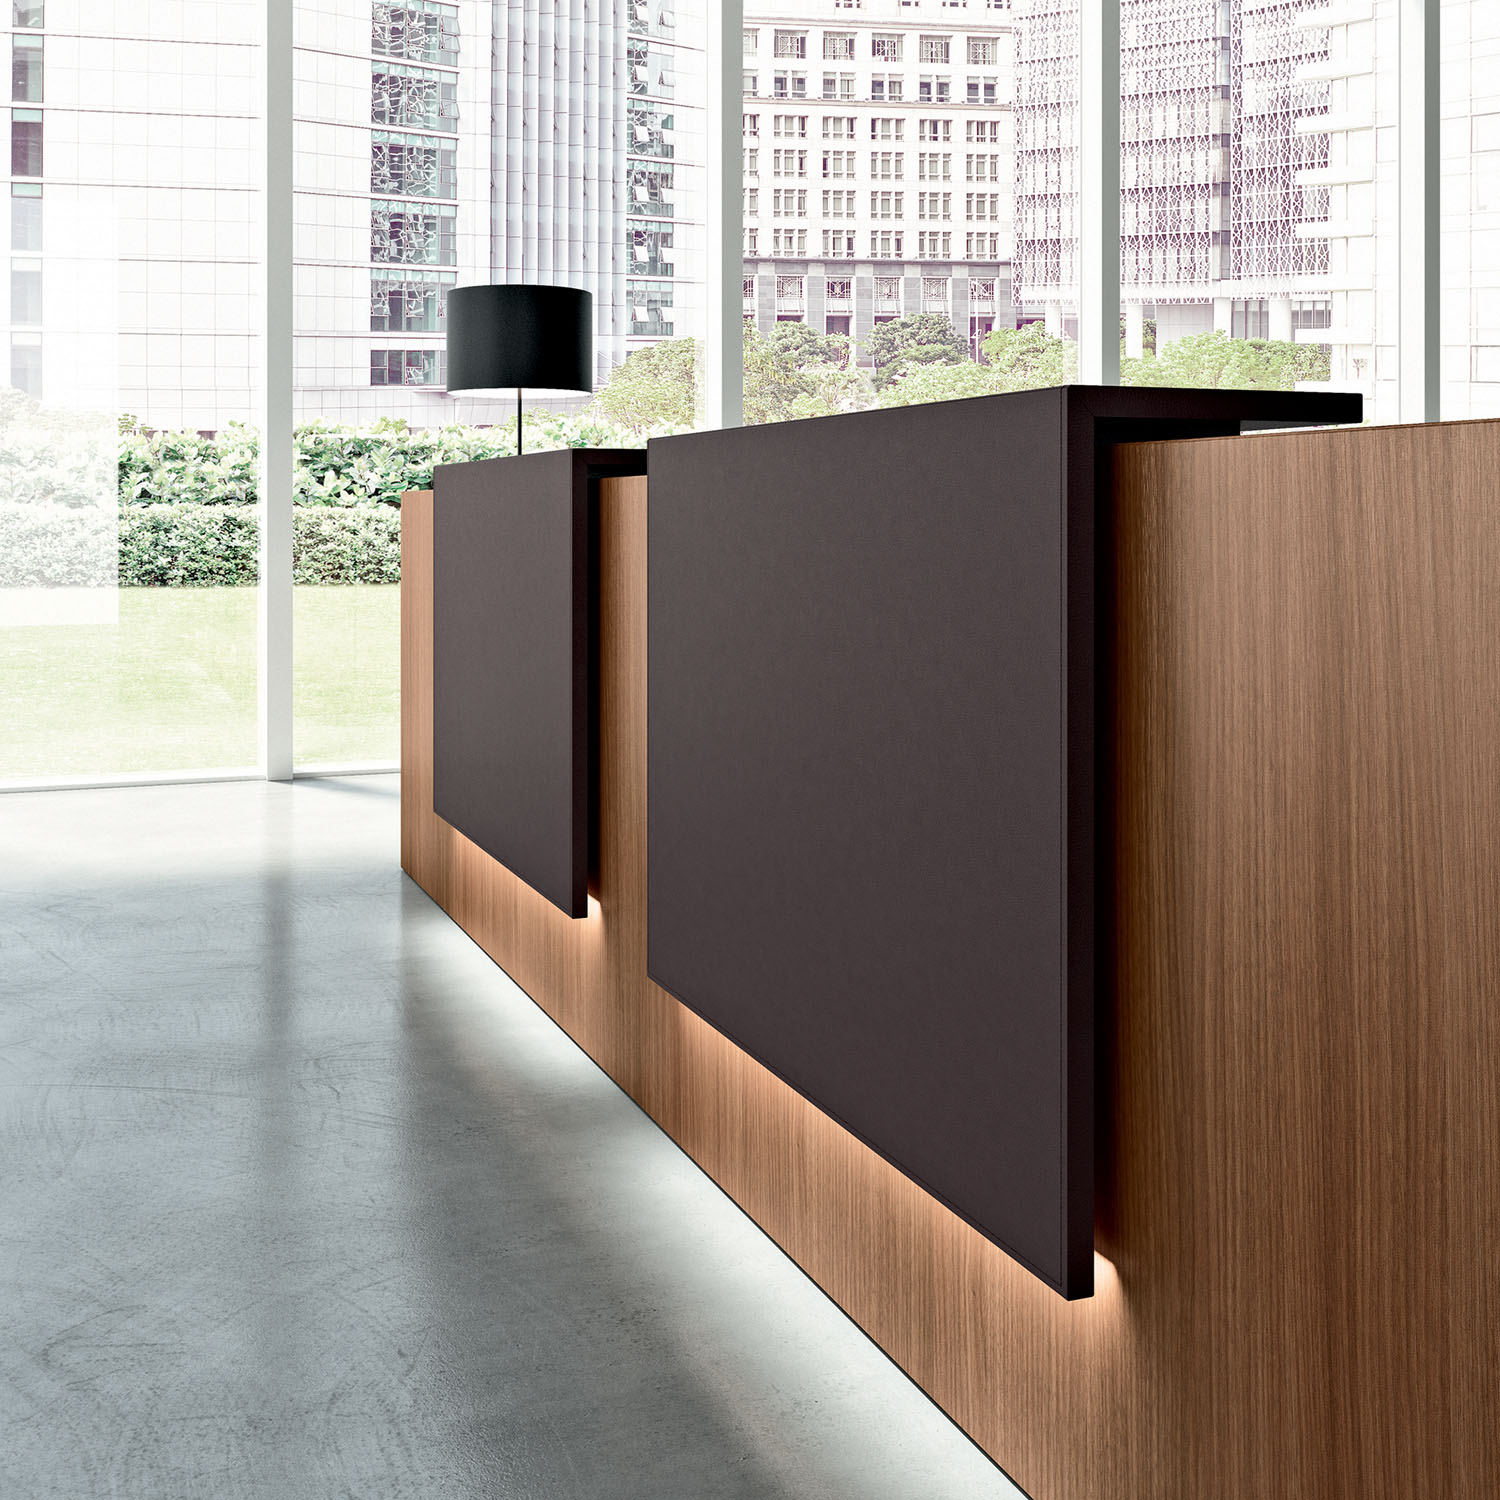 Reception desks with a bold block and smart lighting will draw attention